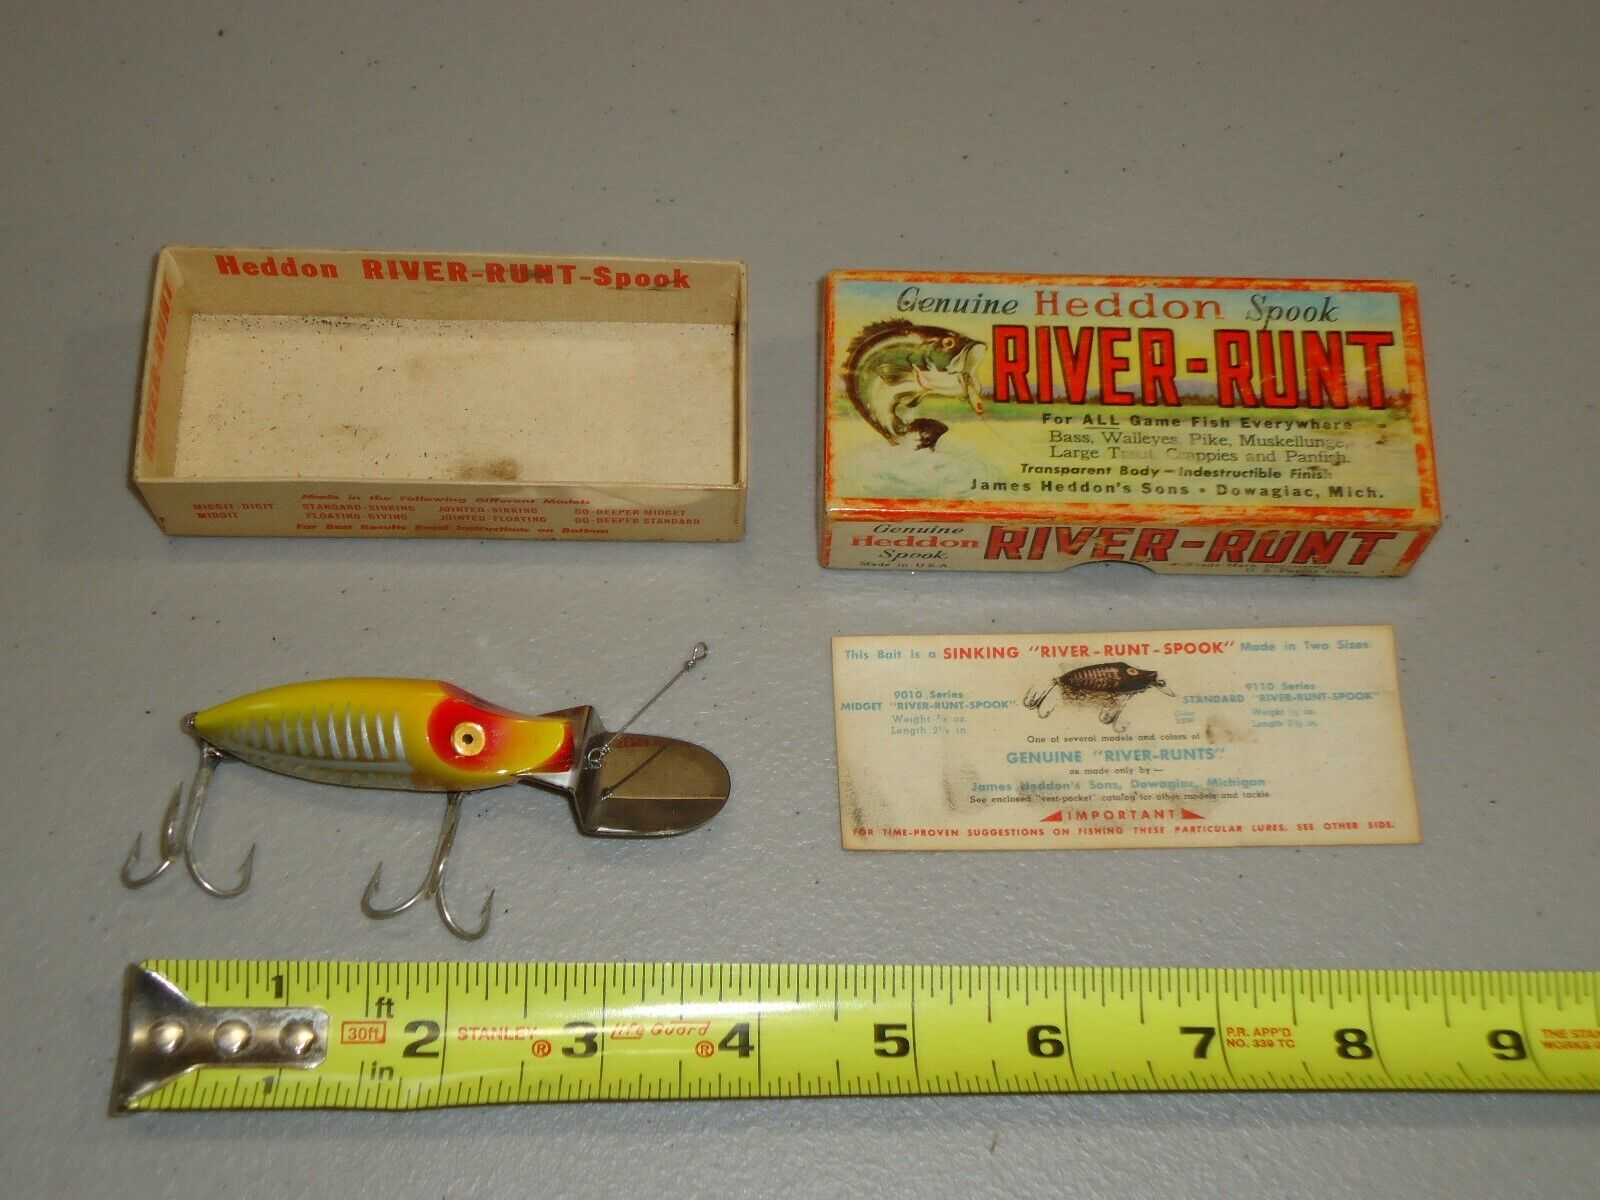 VINTAGE NICE Heddon RIVER RUNT SPOOK   Deep Fishing Lure in Box, YELLOW RED CLEAR  good price